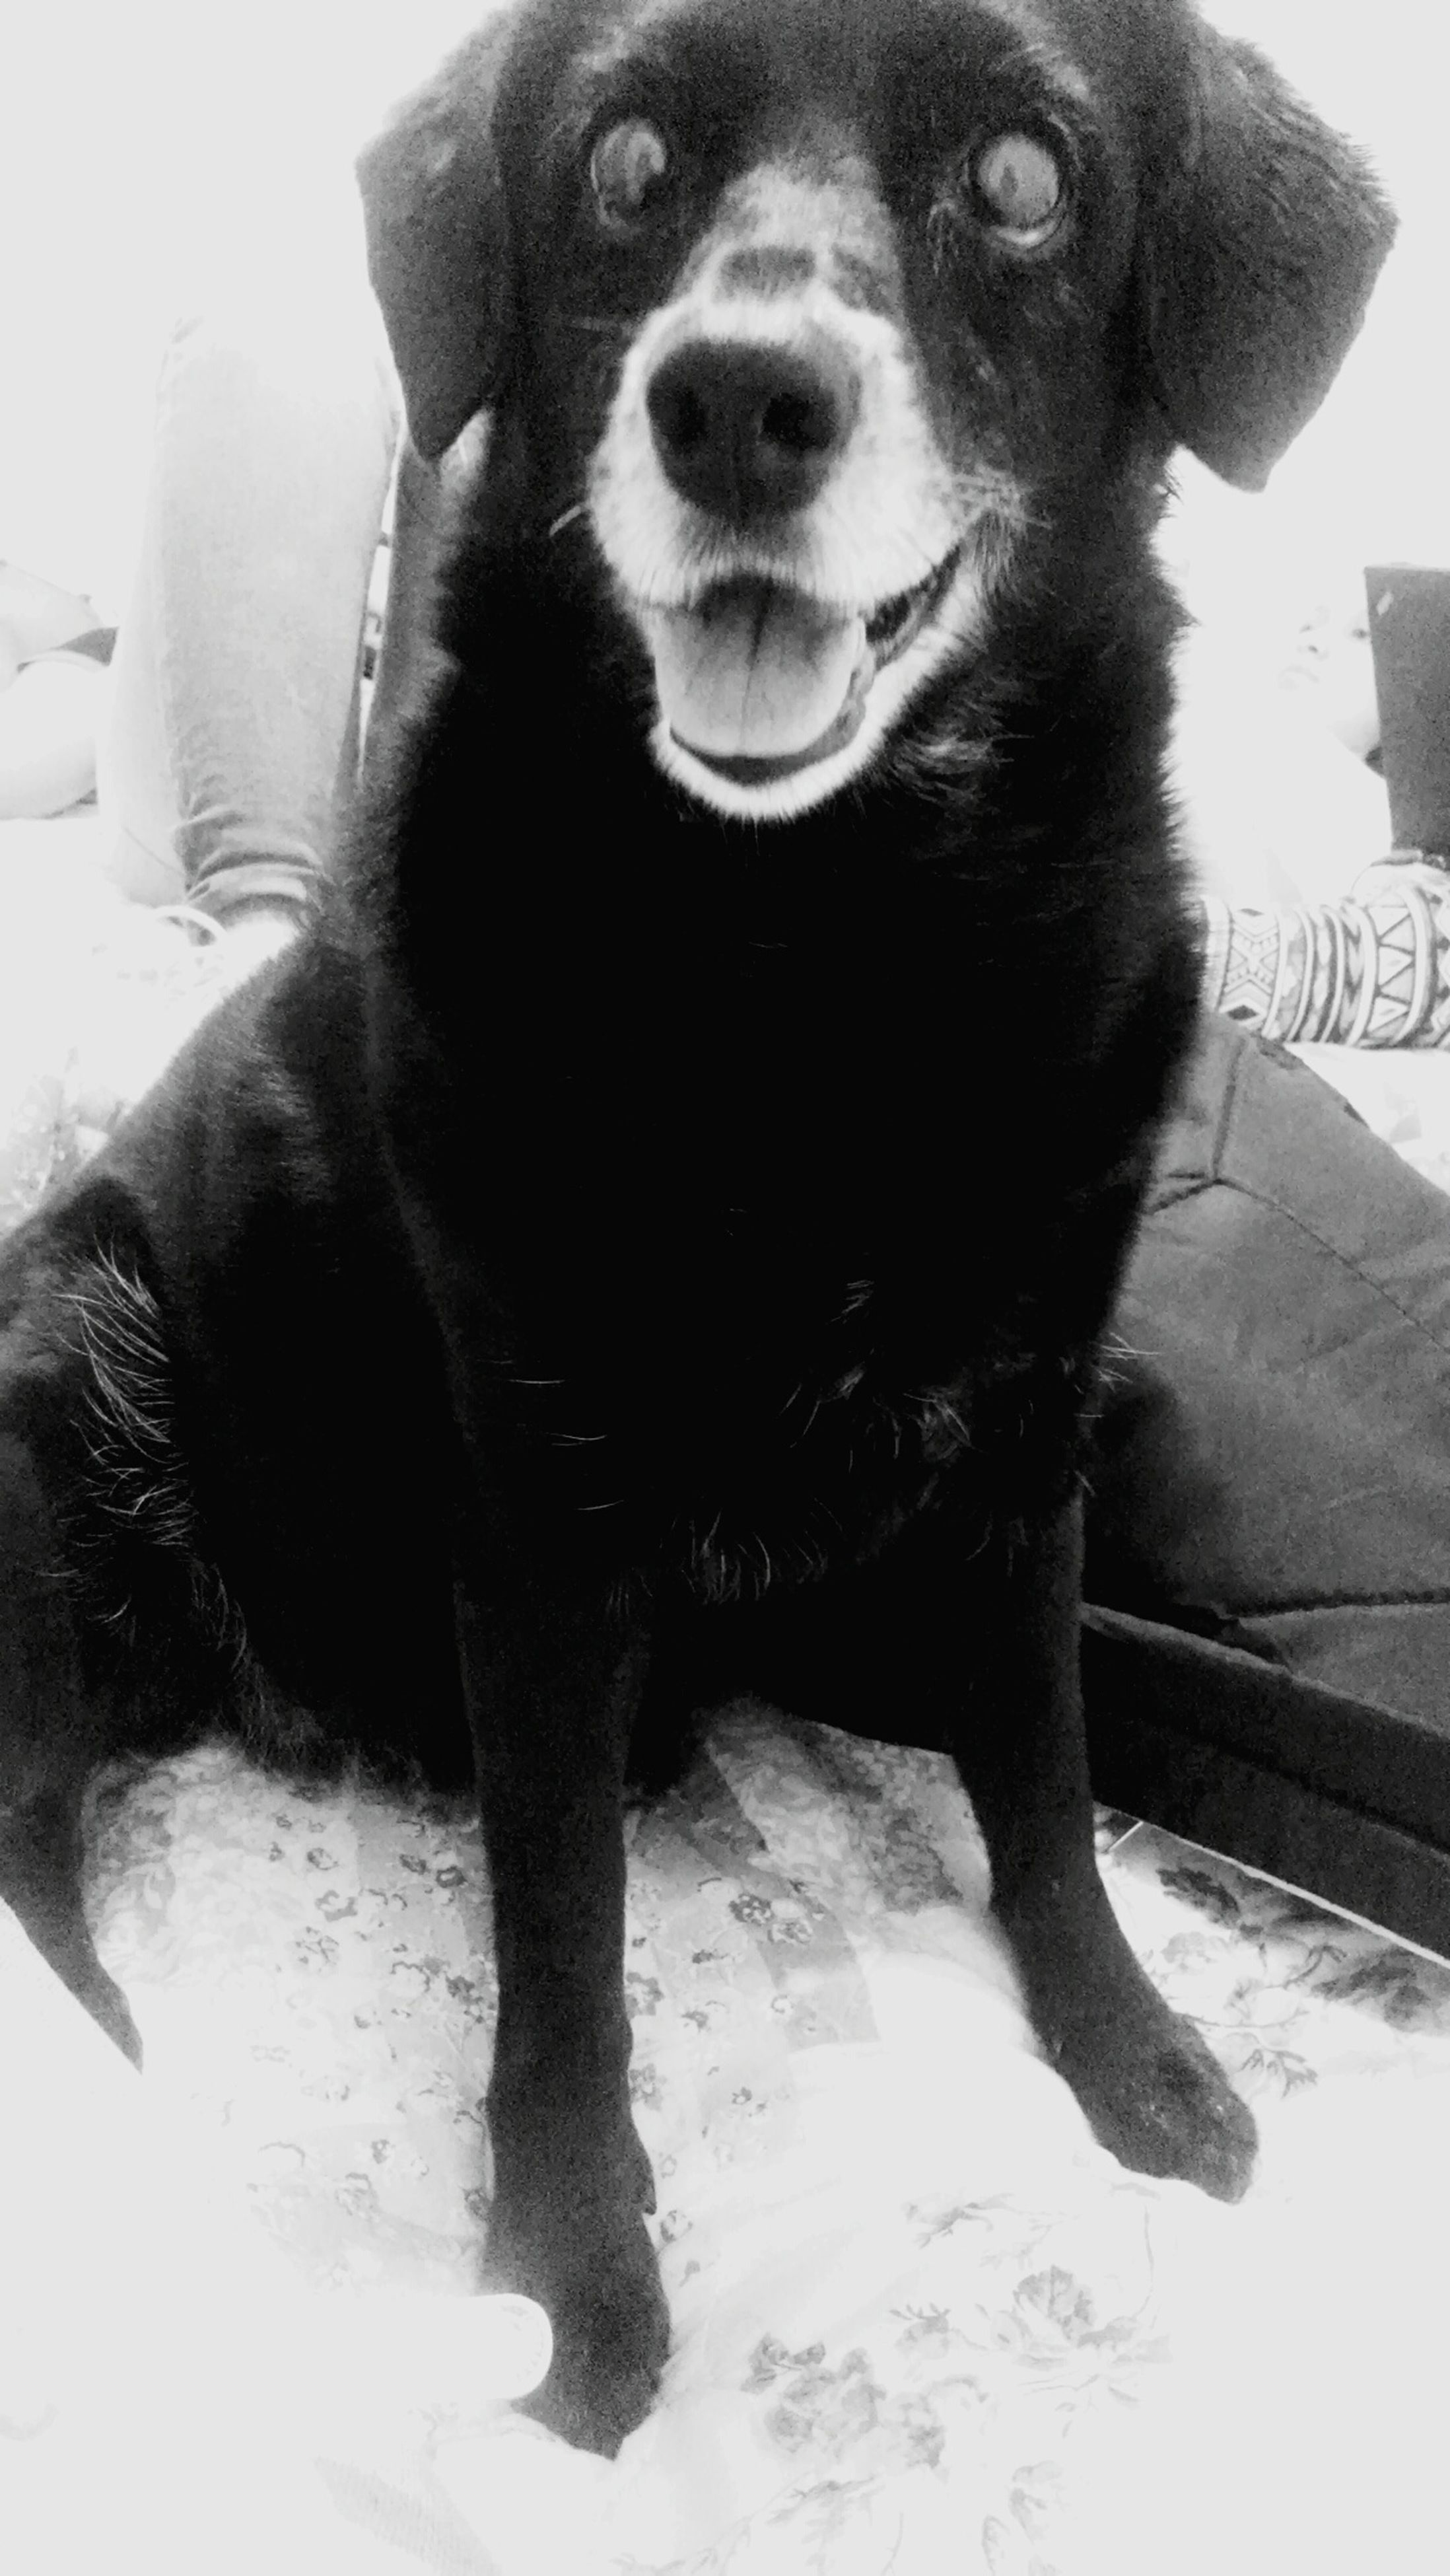 one animal, pets, dog, domestic animals, animal themes, mammal, portrait, looking at camera, sitting, close-up, front view, car, indoors, black color, animal head, snow, day, winter, no people